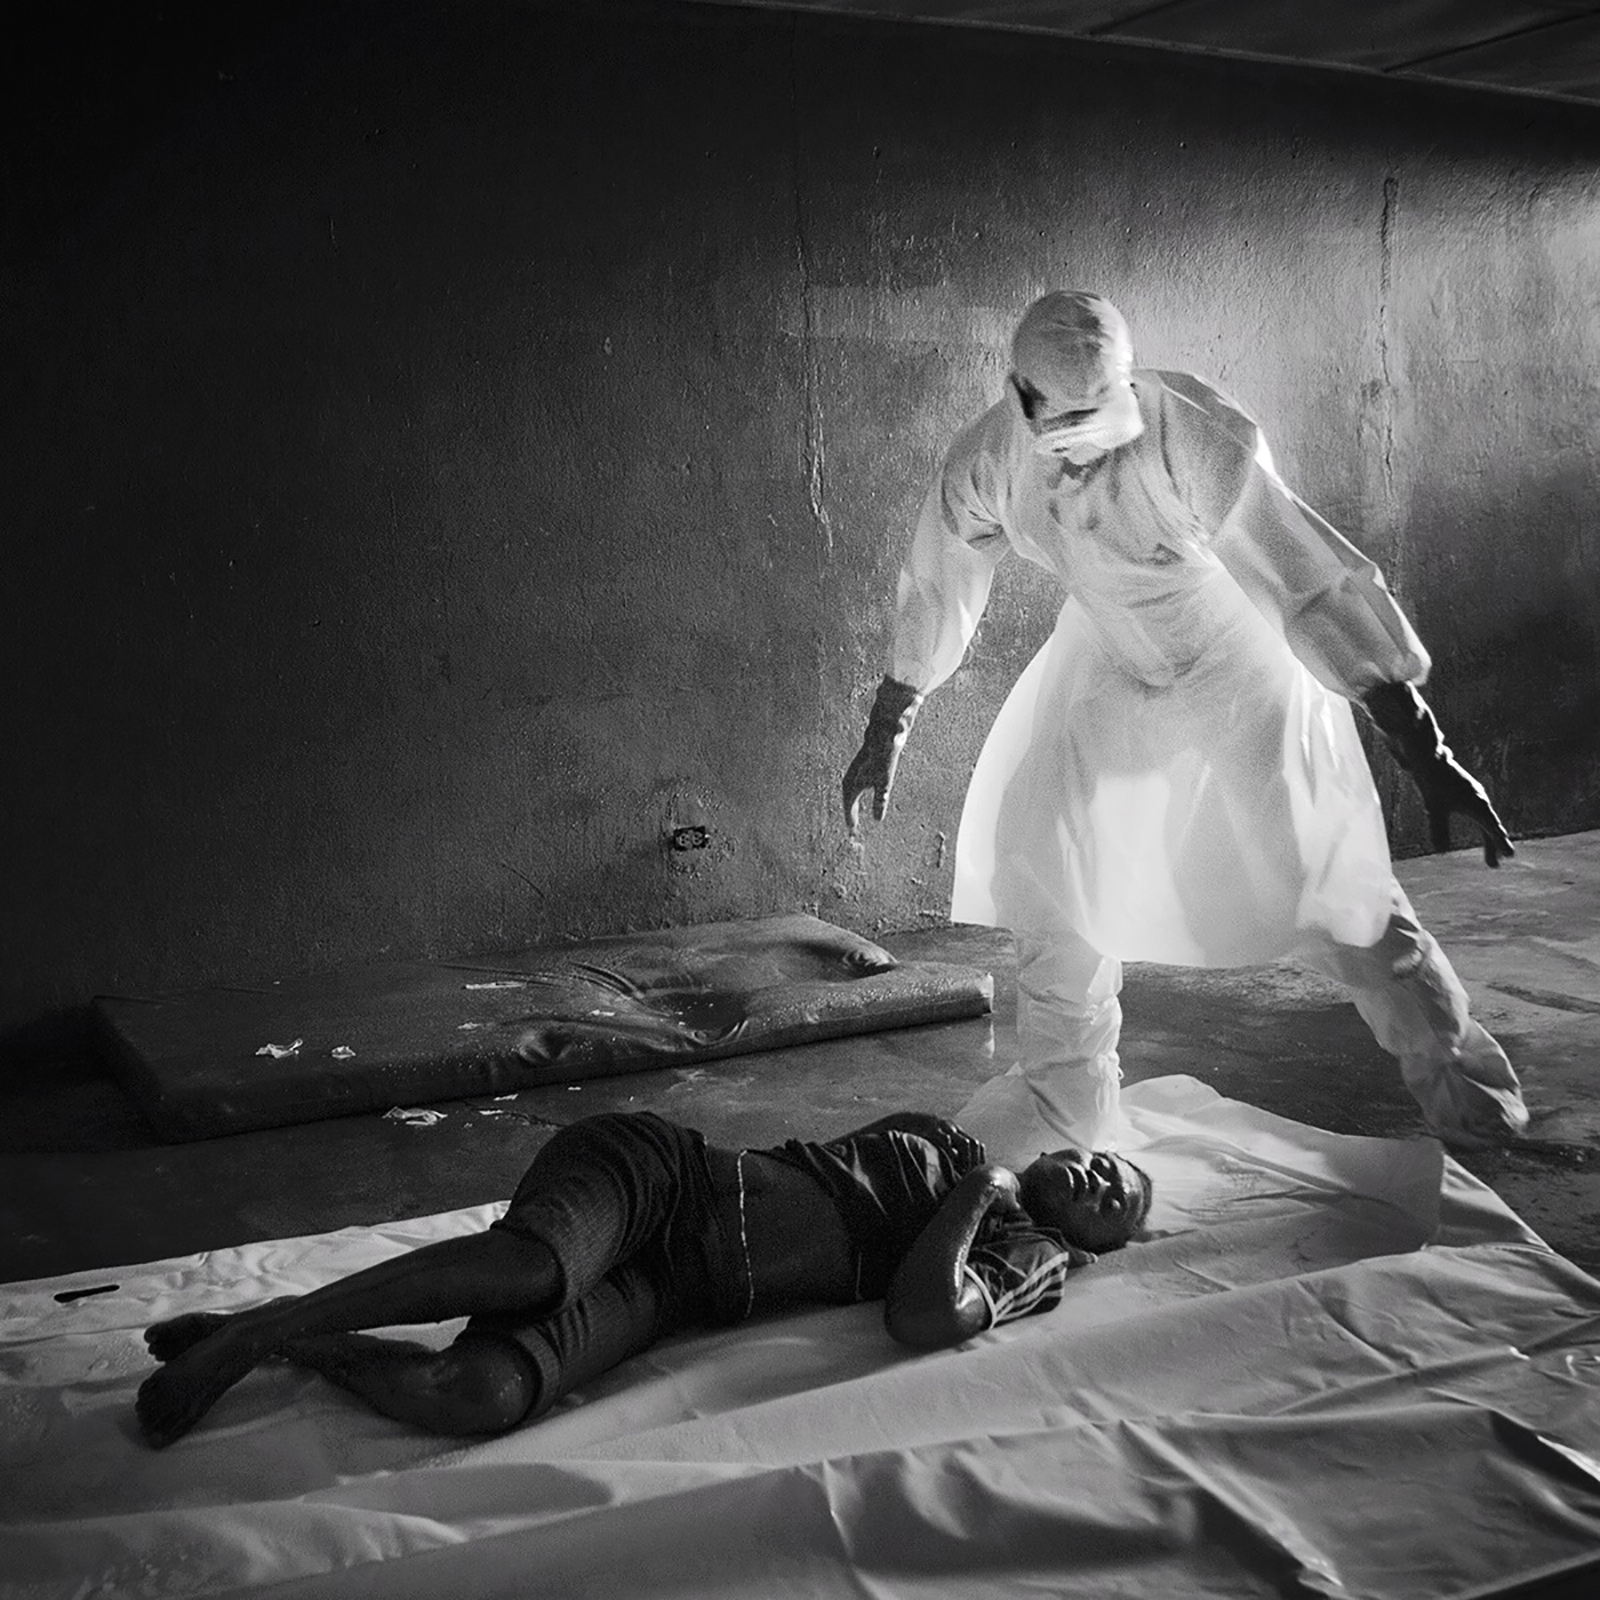 """<b>Kieran Kesner, Aug. 28, 2014. Monrovia, Liberia.</b>                                                                      """"This is a photograph of the first person I saw who had died from the Ebola virus in West Point, Monrovia. After the  Liberian government mandated all schools be shut down in an attempt to stop the spread of the virus, the empty rooms of this school were converted into a temporary Ebola holding center. I entered the building alone and photographed the woman from a distance. I began to make my way closer to her, being careful to avoid the puddles of vomit and other pools of still liquid on the cement floor. Standing over her, I noticed the unbroken beads of sweat that remained on her face and realized the woman had only died a few hours before. I took a few steps back as a body removal team entered the room. Up until this point, to me, Ebola deaths seemed like statistics, but suddenly it had become real. I became enveloped in fear: fear of the invisible killer in the room, fear that I might have made a mistake, fear that I wouldn't know for days whether or not I was sick, and fear that I would infect my family and loved ones.  I desperately wanted to leave the room, to leave the country, to be home, but I couldn't. I continued to photograph. I watched as the men burdened with the task of removing her body, clad all in angel white, lifted the woman from her mattress and placed her in a body bag on the floor. I photographed as they sprayed her one last time with disinfectant and zipped it shut."""""""